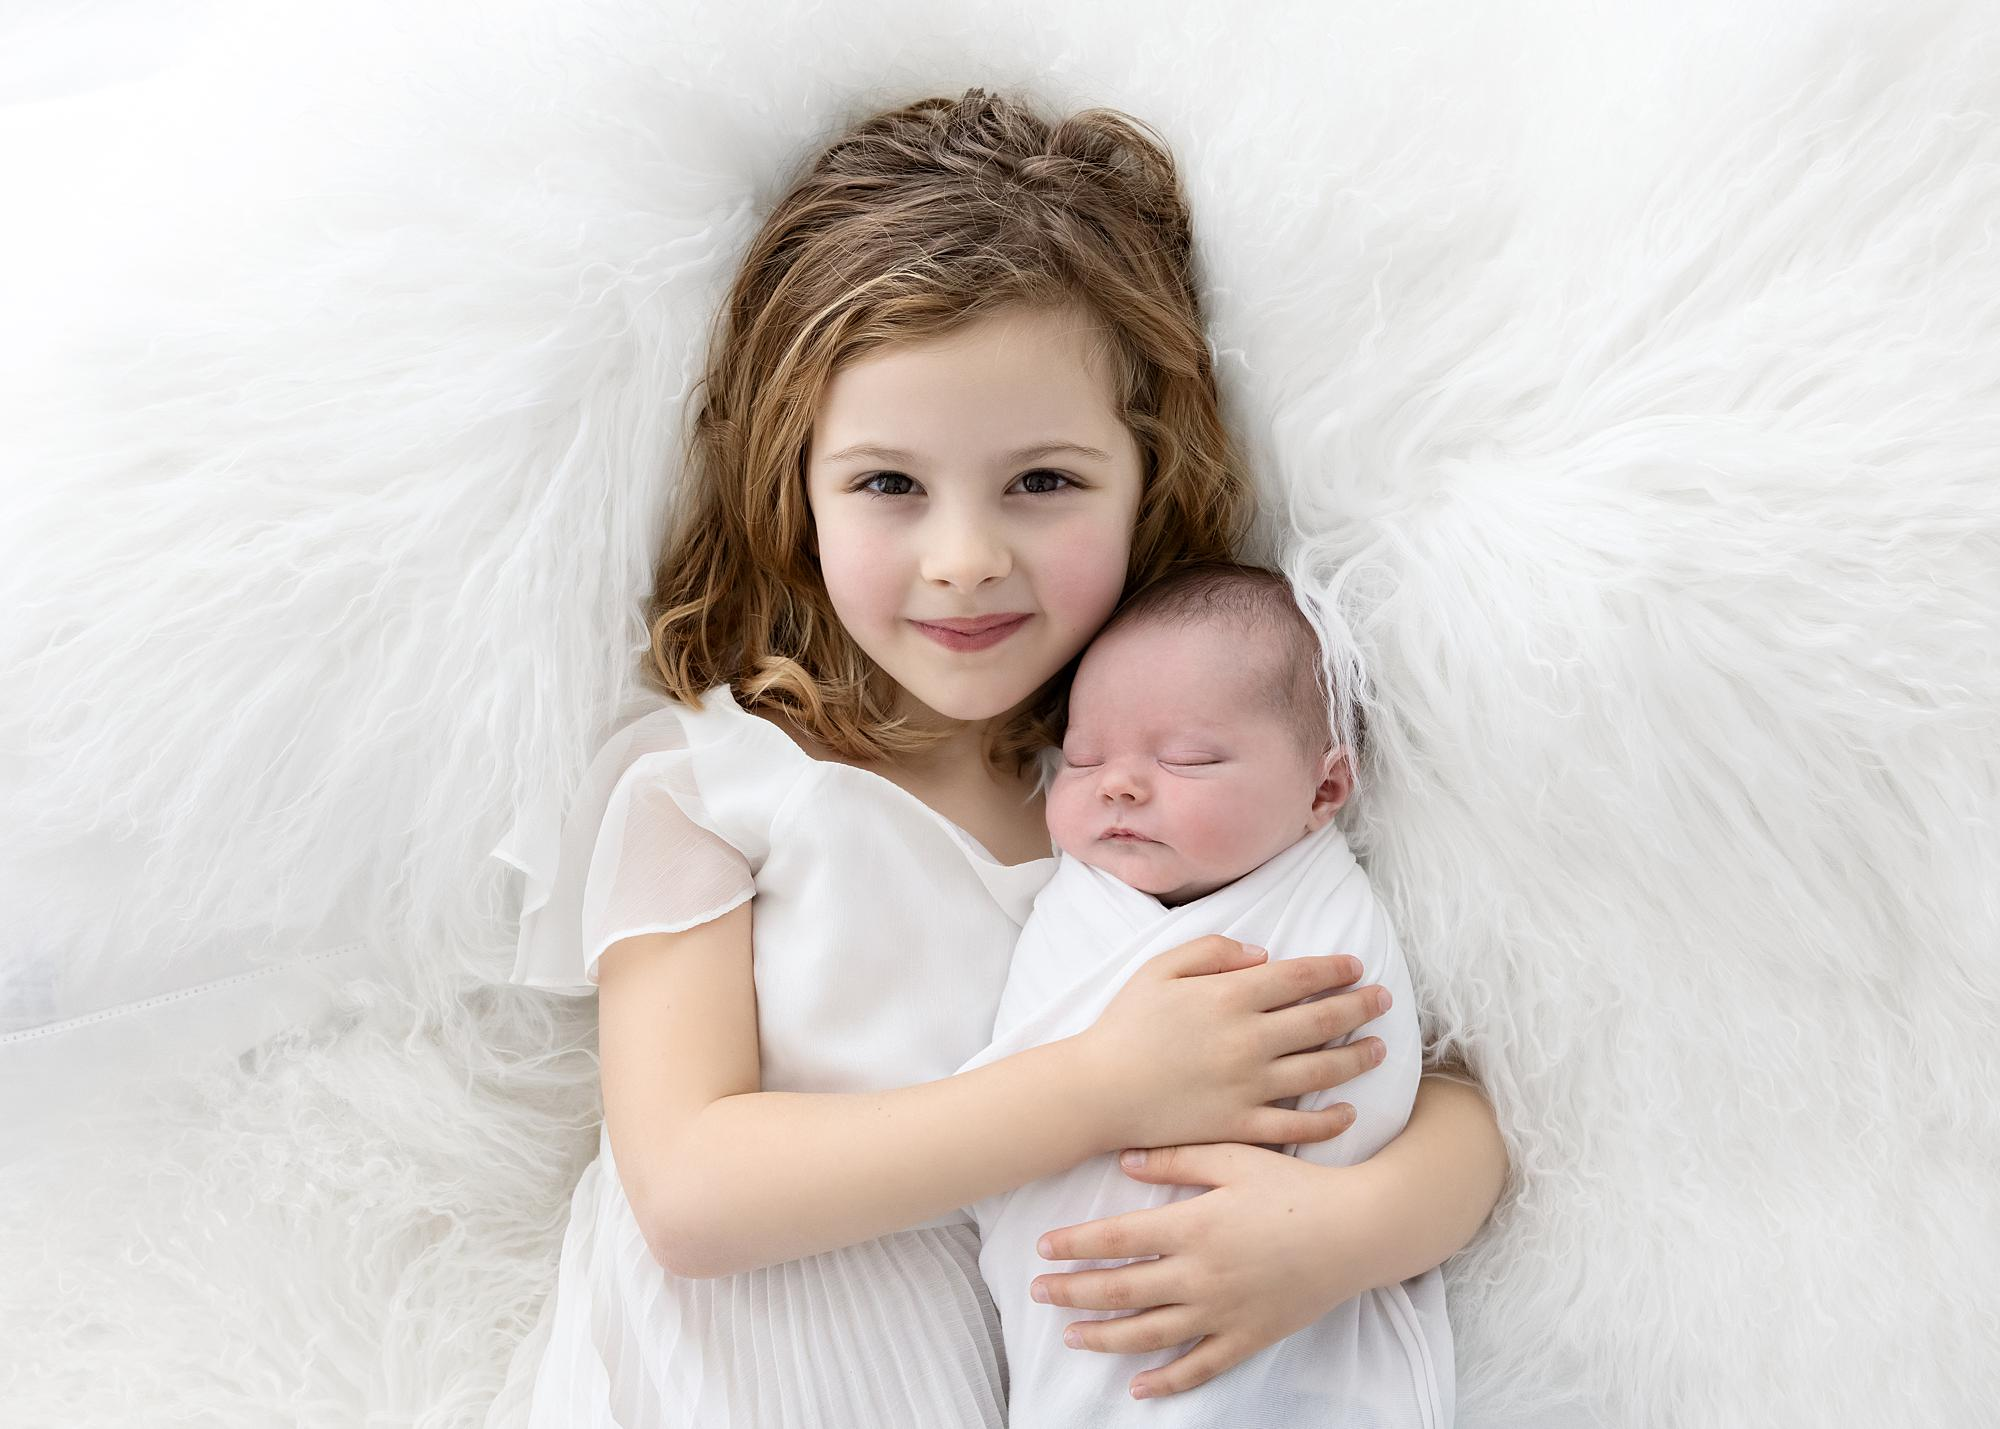 Little Girl cuddles her Baby Sister on a white rug during a Newborn Shoot in Stoke By Clare, Suffolk